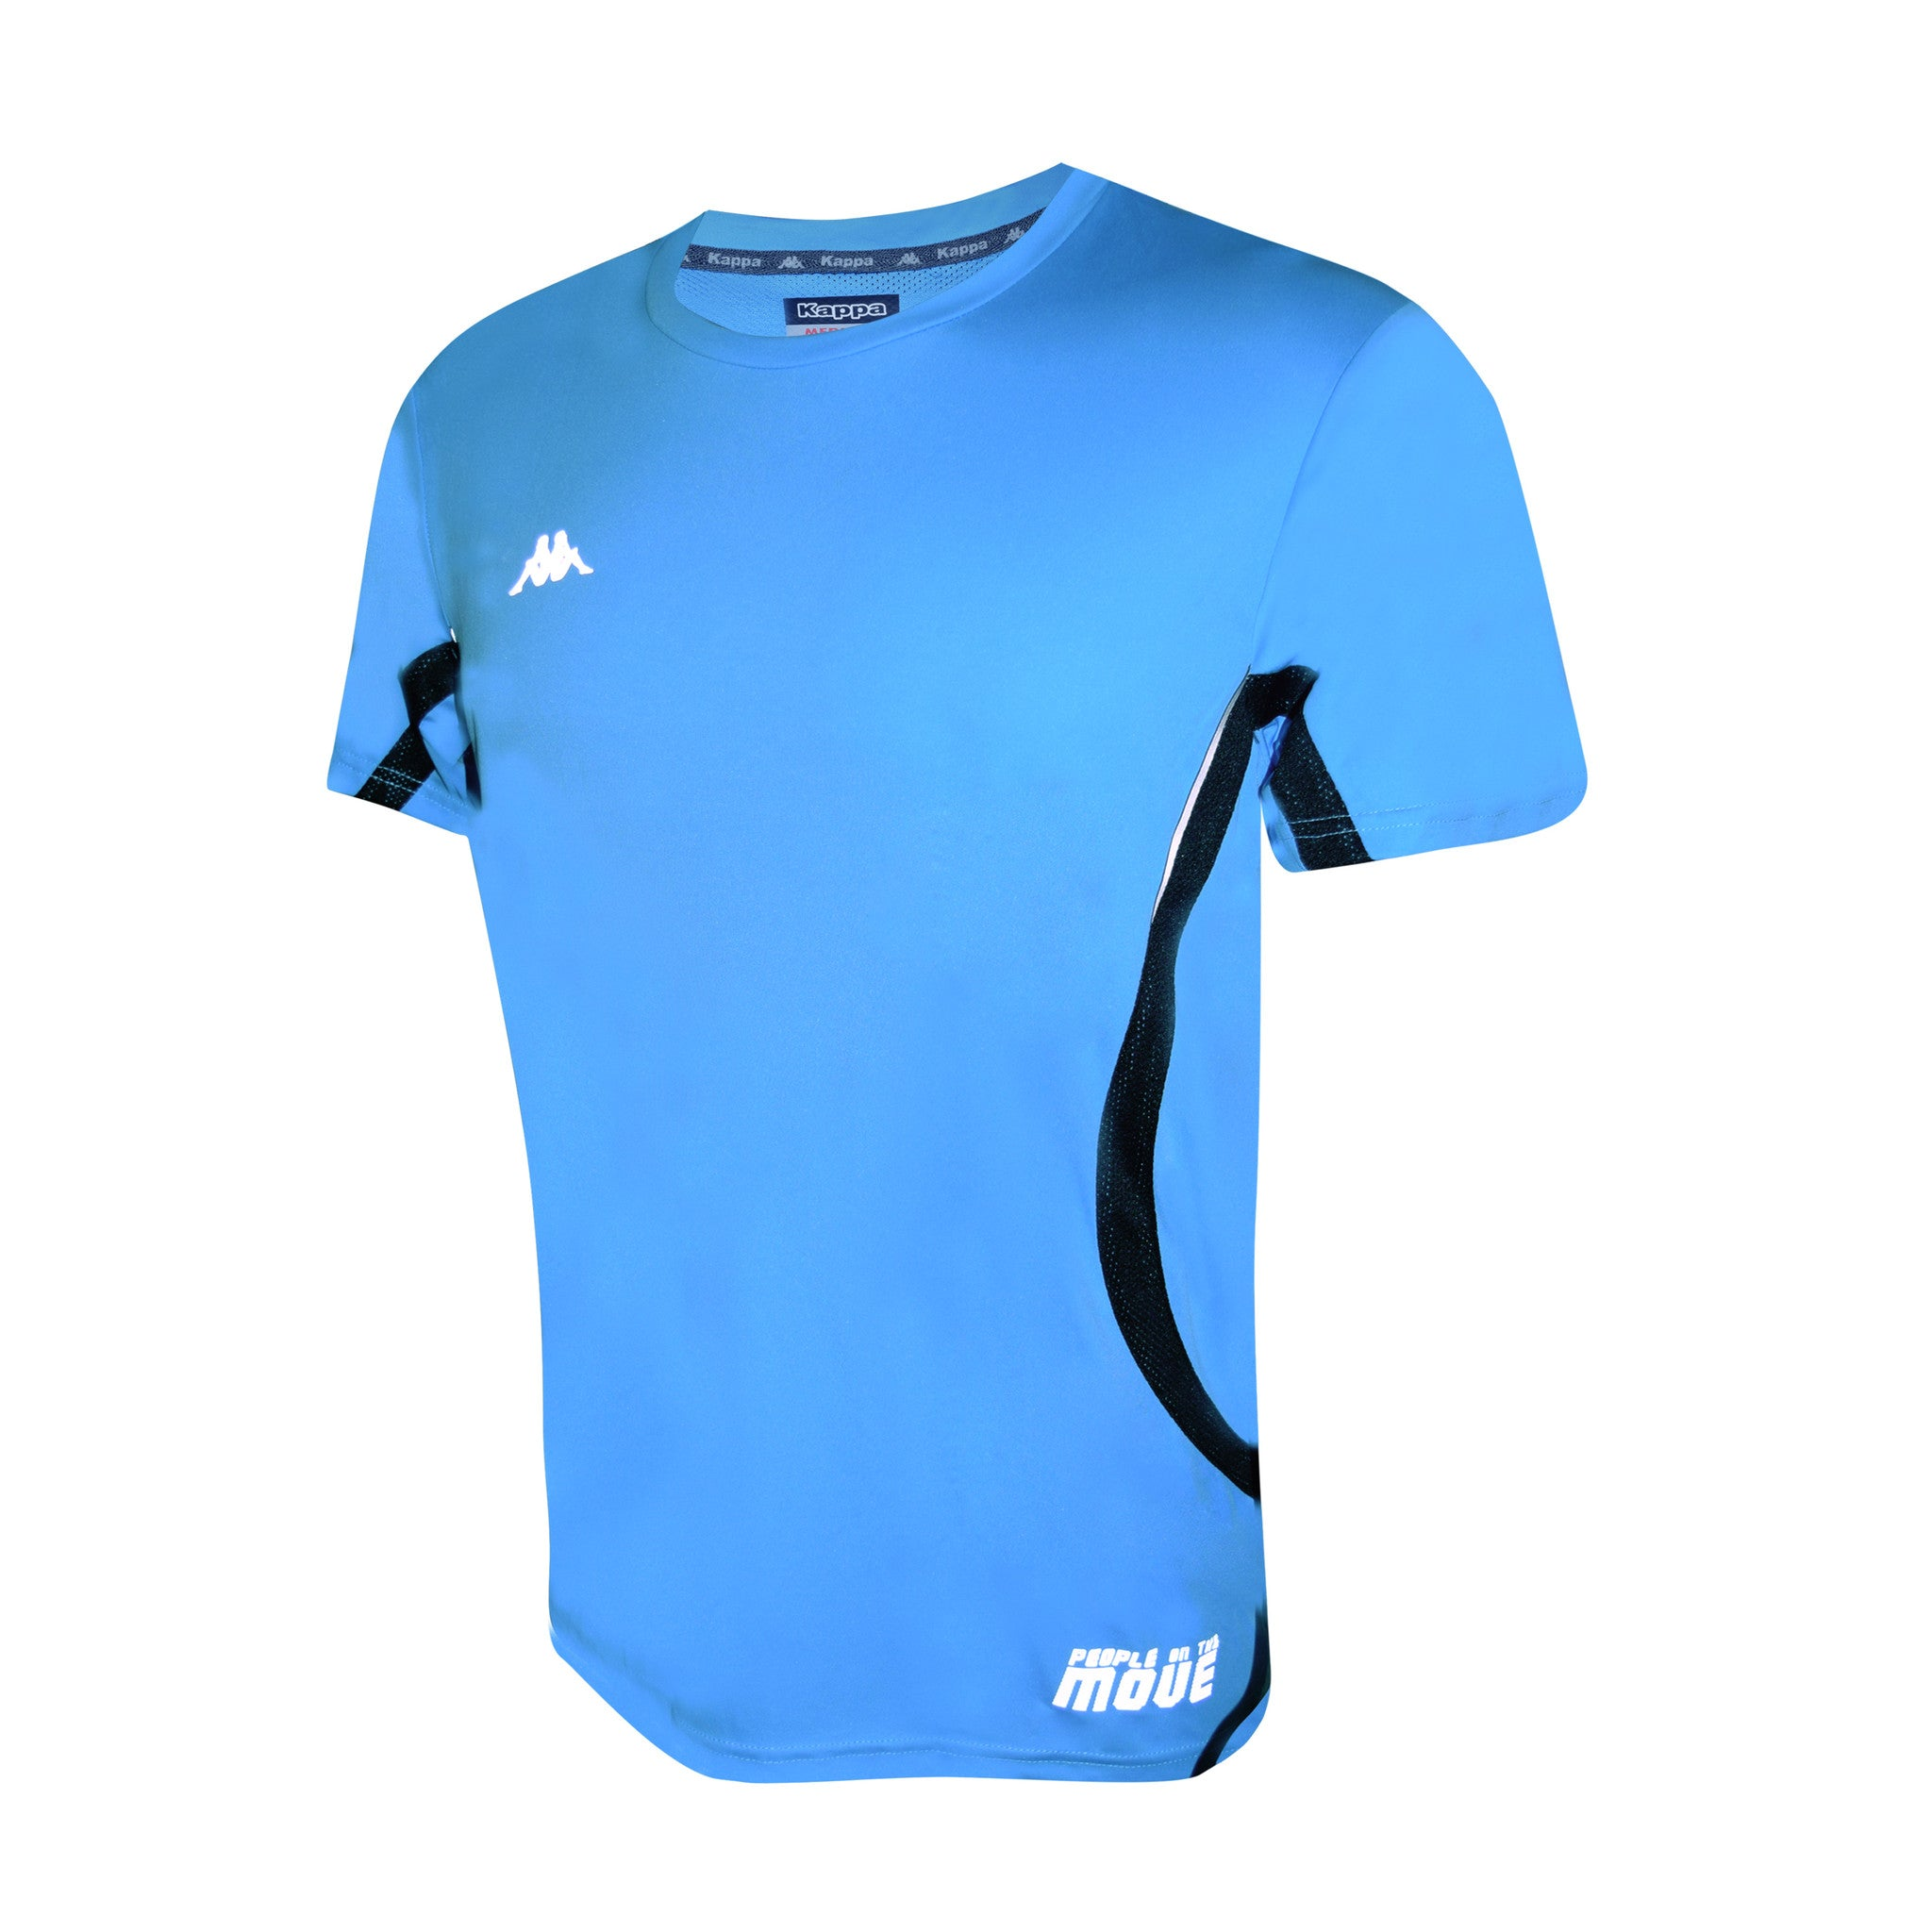 Jersey caballero performance JE-050-PFC